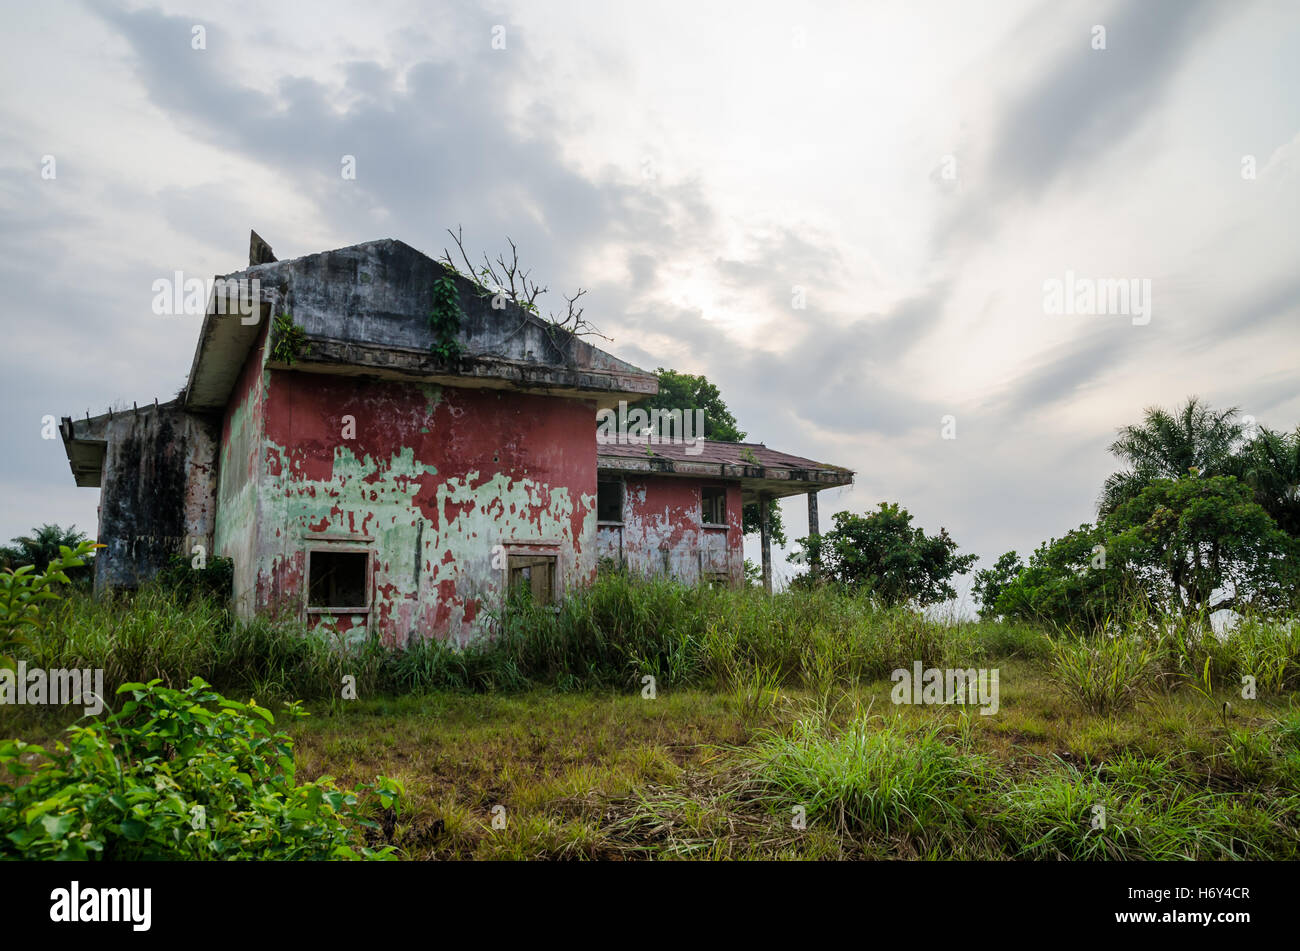 Ruined mansion surrounded by lush green with dramatic sky. Traces of the civil war in Liberia. - Stock Image